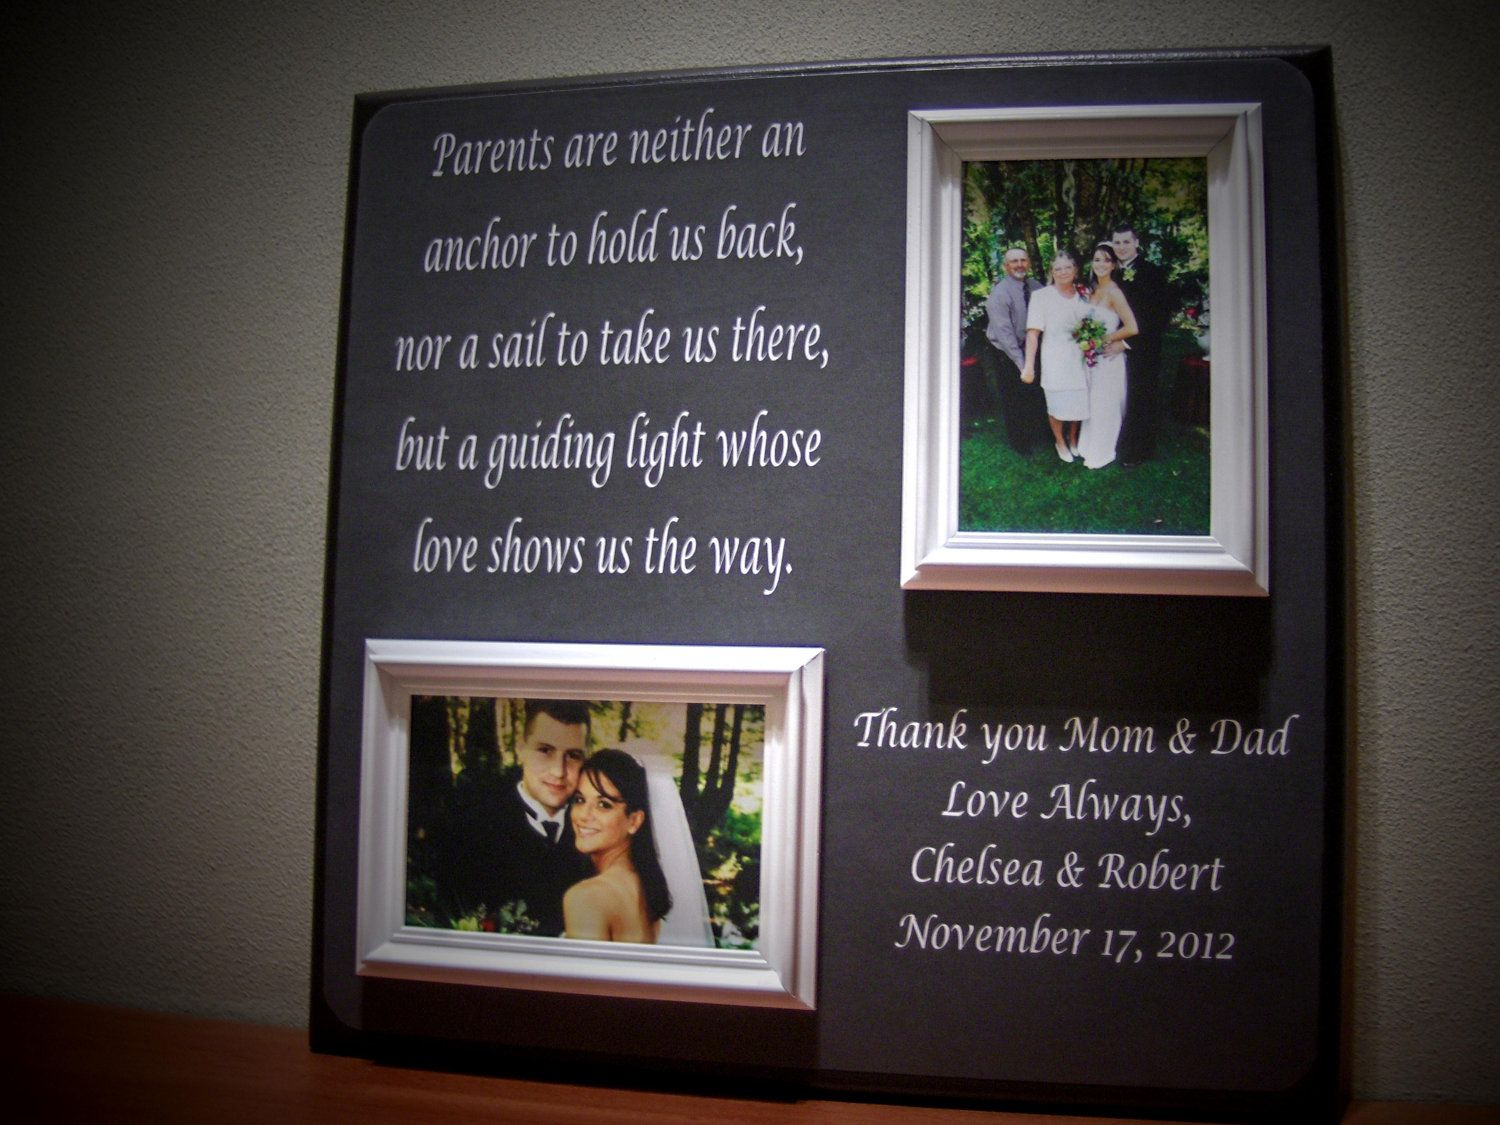 Thank You Wedding Gift Ideas For Parents : Ideas Wedding Thank You Gifts For Parents 1000 images about wedding on ...